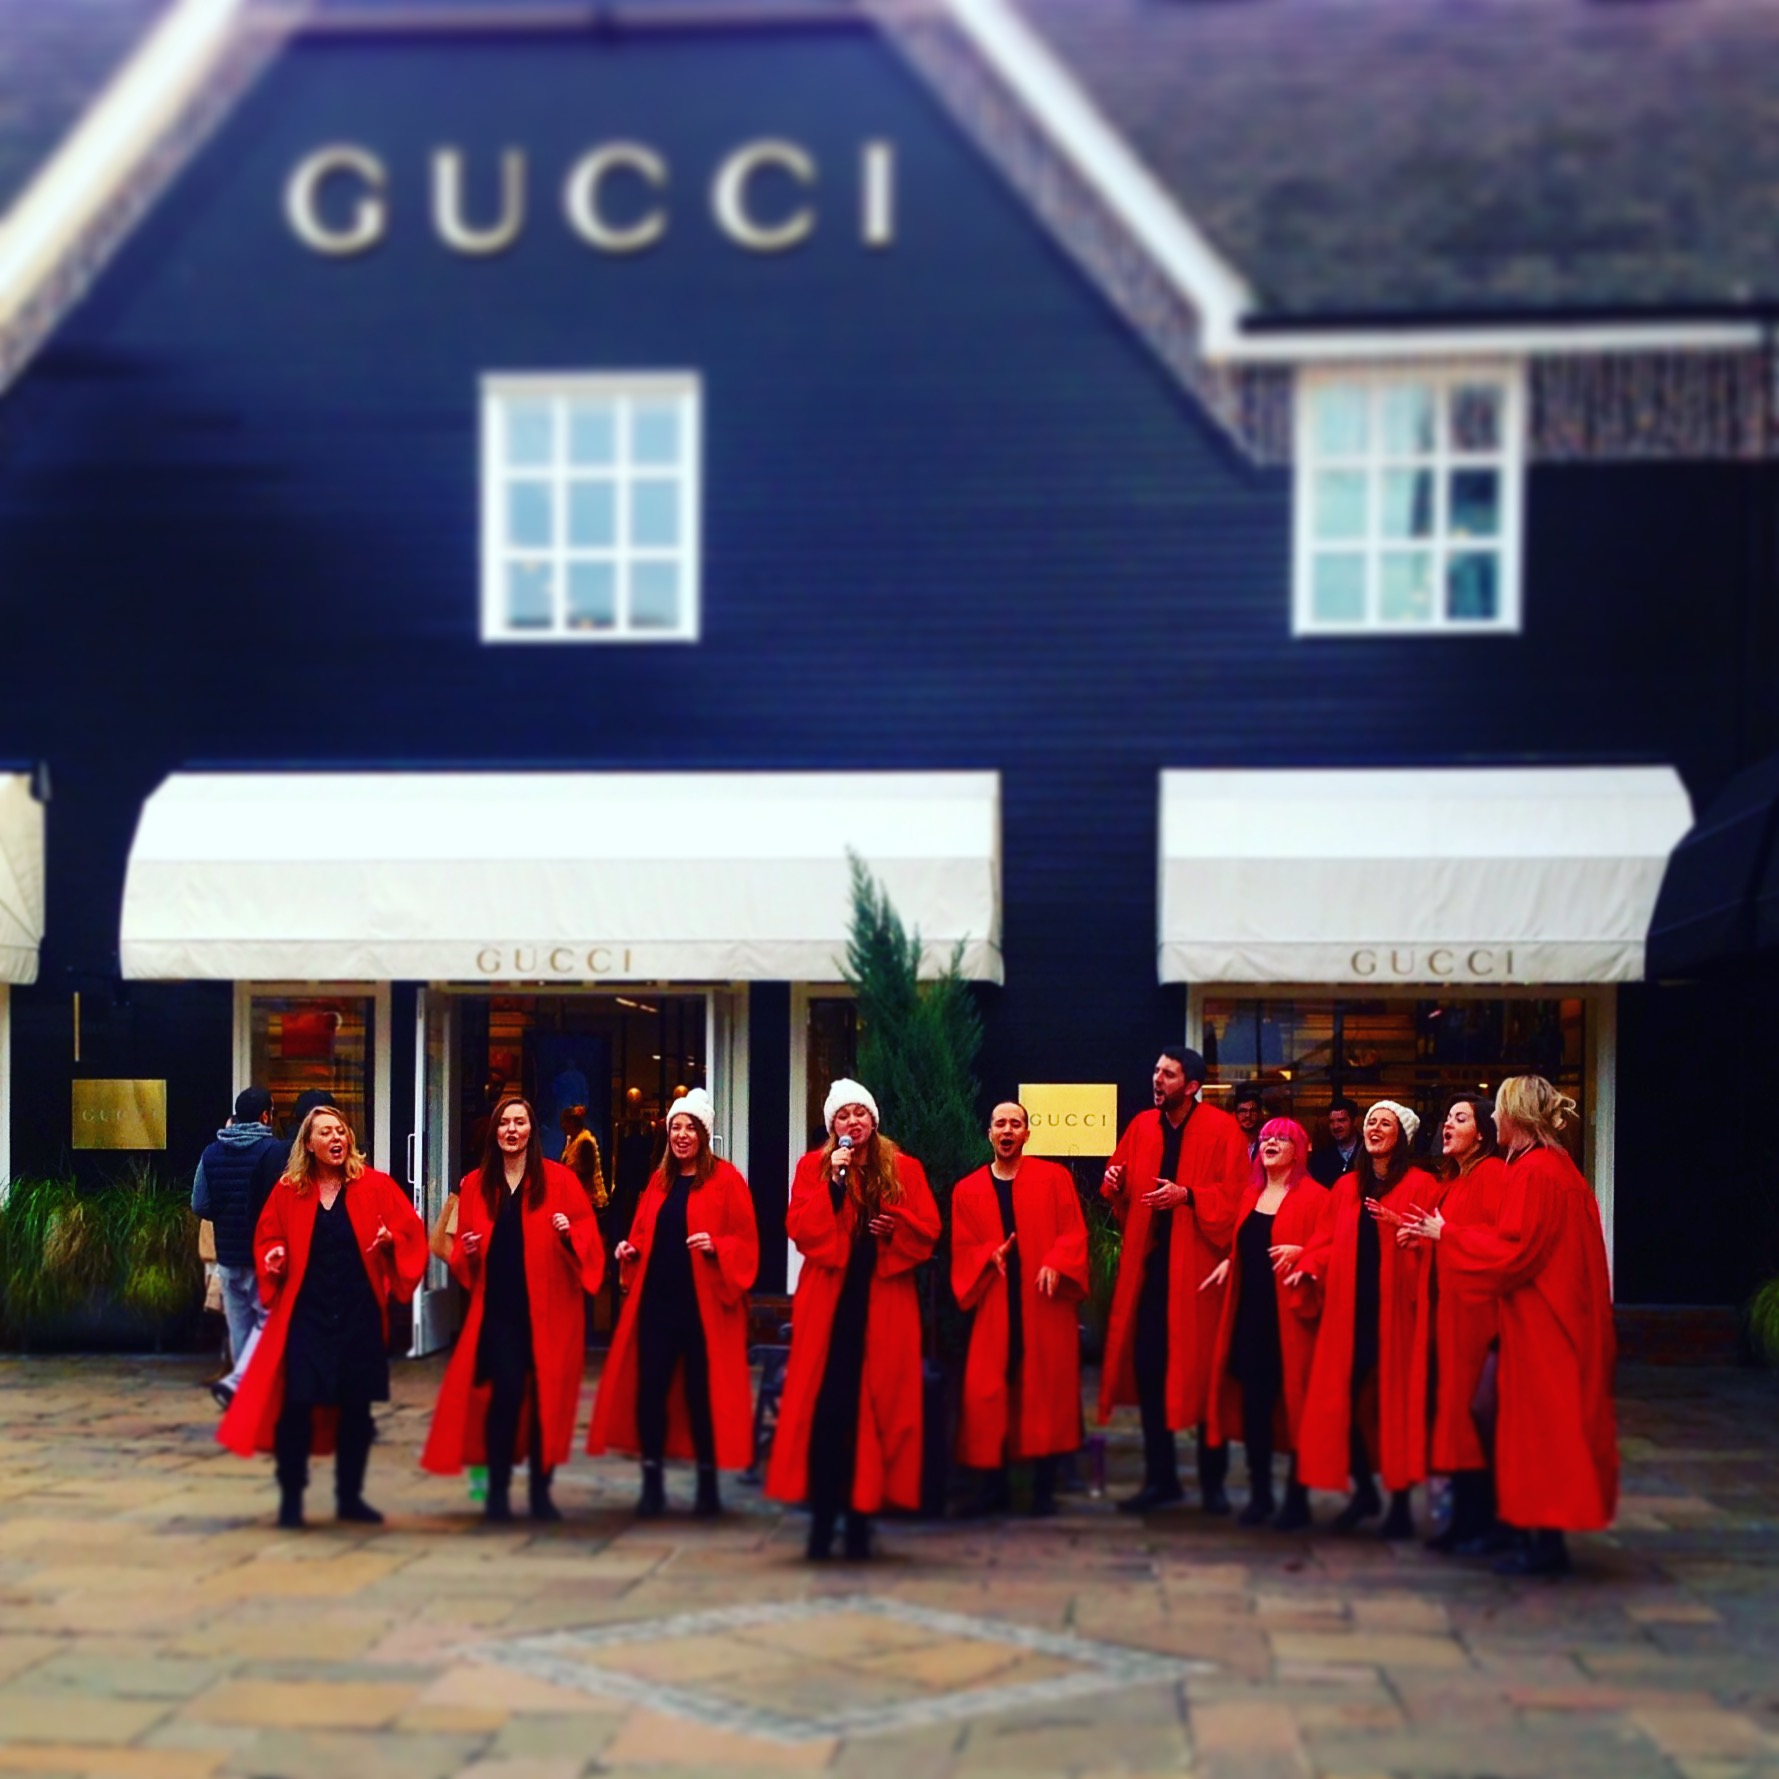 A ten-strong choir in red robes and white bobble hats sing in front of a Gucci shop